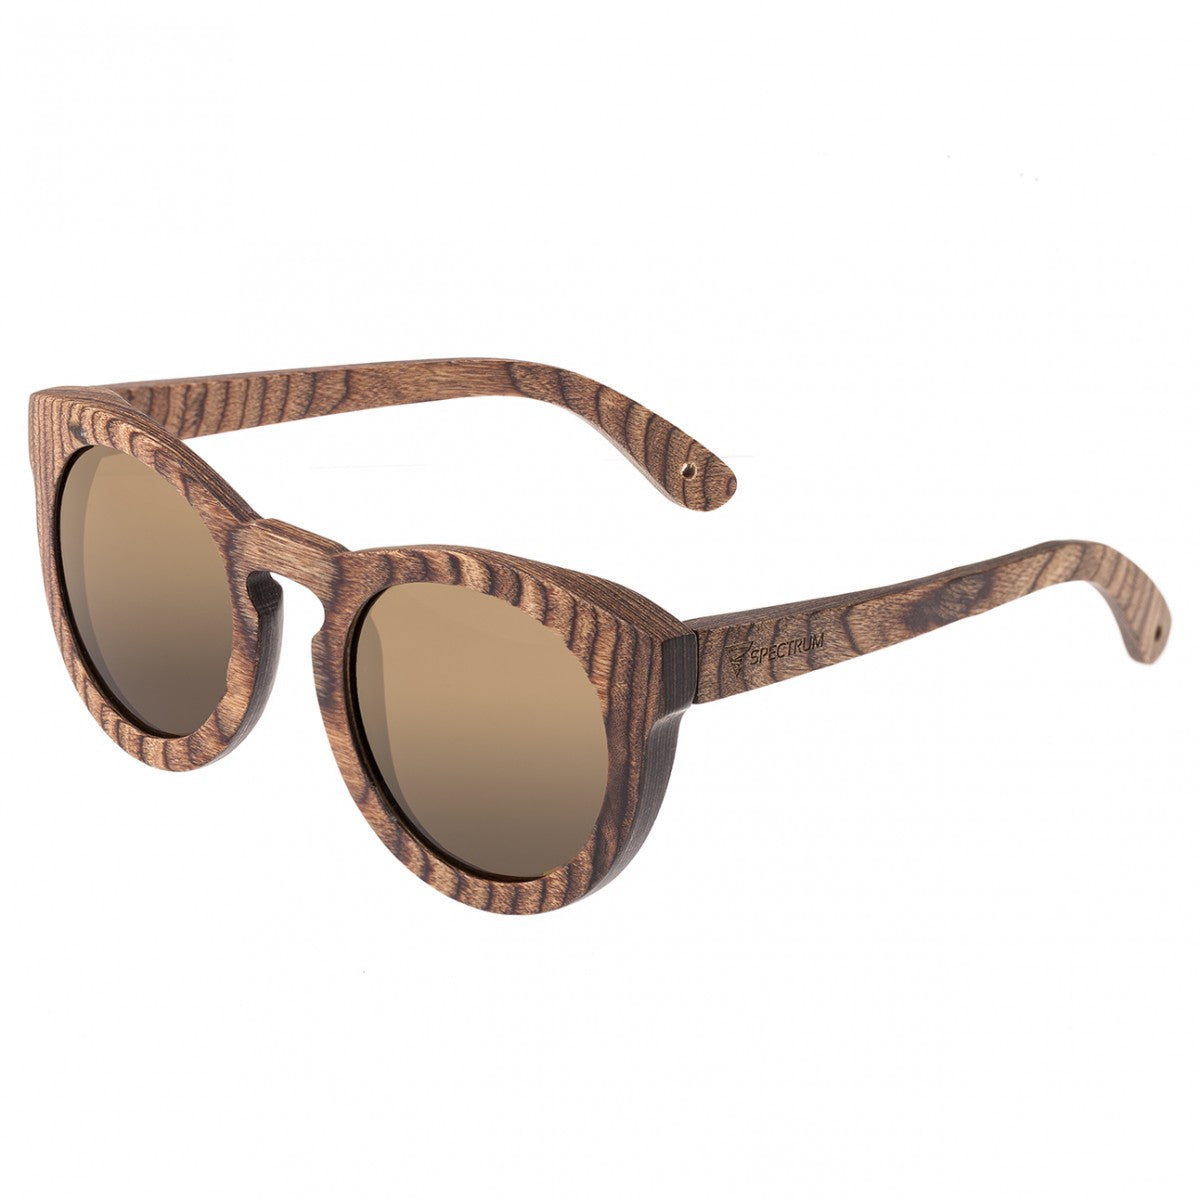 Spectrum Flores Wood Polarized Sunglasses - GENT.ONE